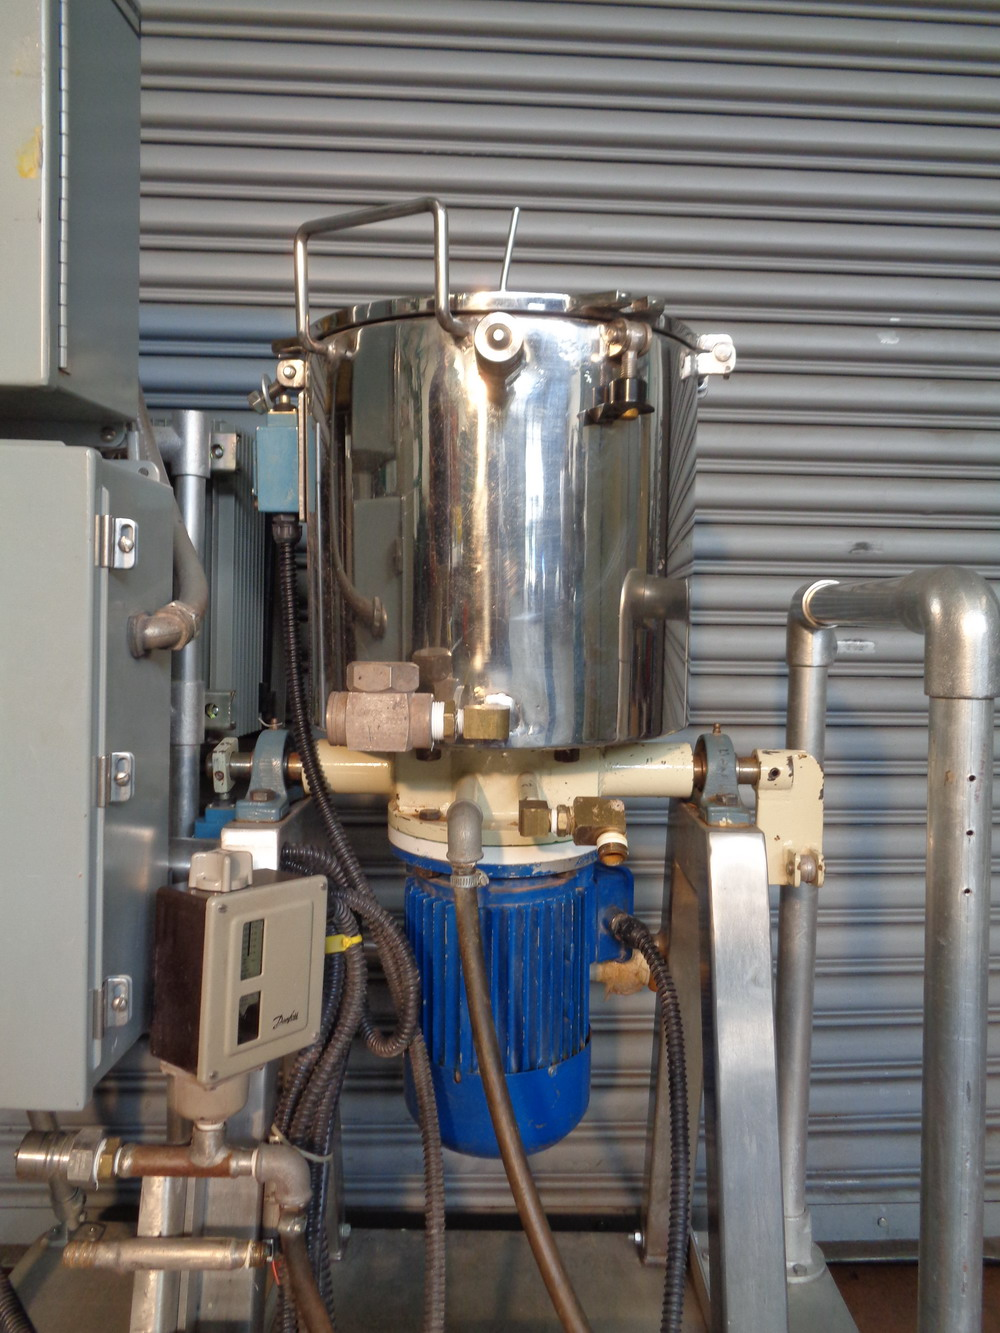 Dosapak 5 gallon Stainless Steel Vertical Powder Mill - Image 4 of 5